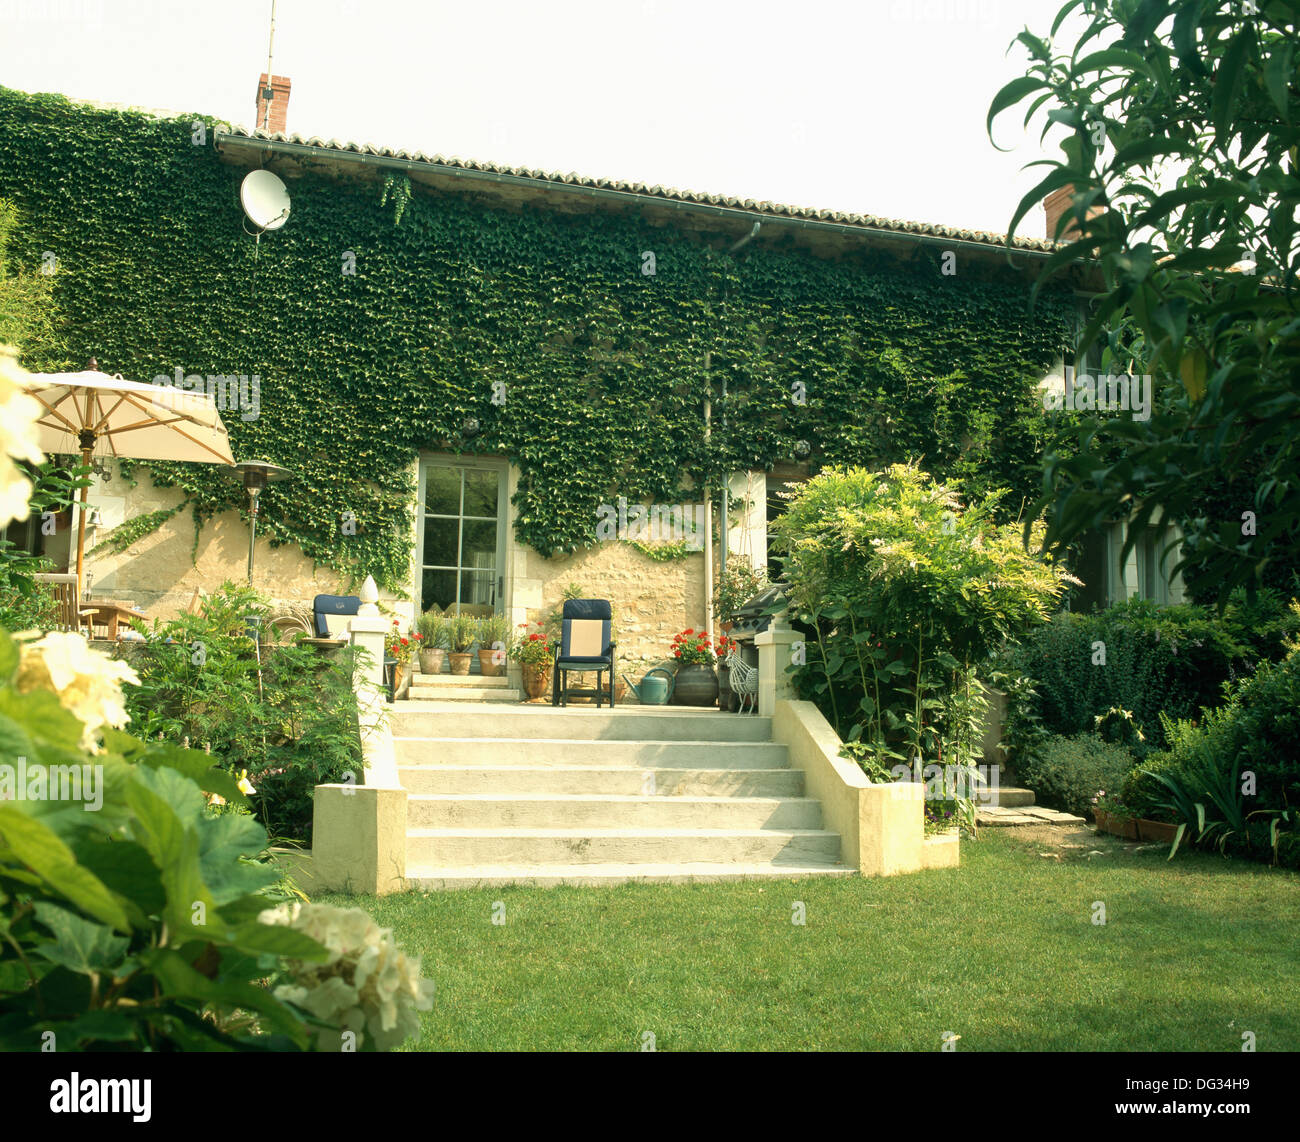 stone steps up to patio in front of ivy clad traditional french